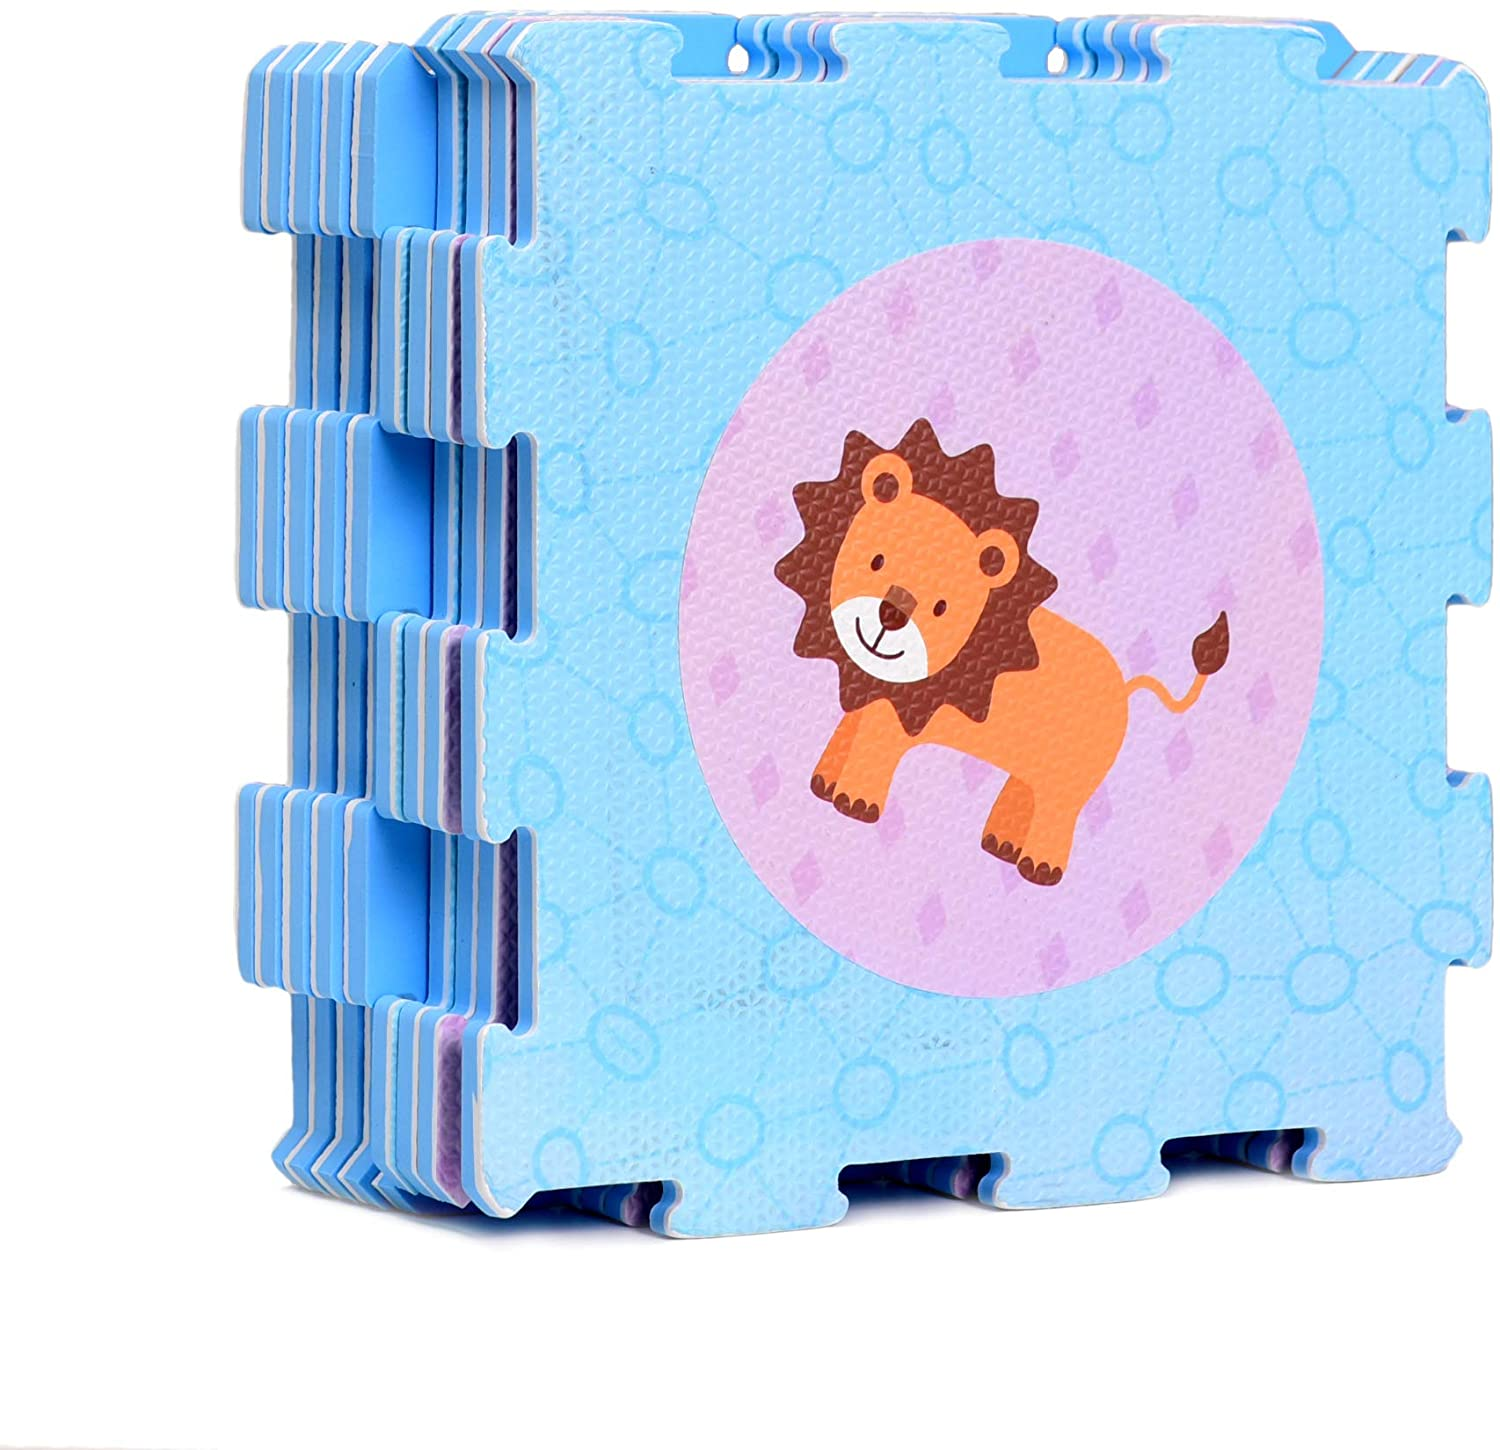 Animals and Shaps Rubber EVA Foam Puzzle Play mat Floor. 9 Interlocking playmat Tiles (Tile:12X12 Inch/9 Sq.feet Coverage). Ideal: Crawling Baby, Infant, Classroom, Toddler, Kids, Gym Workout time